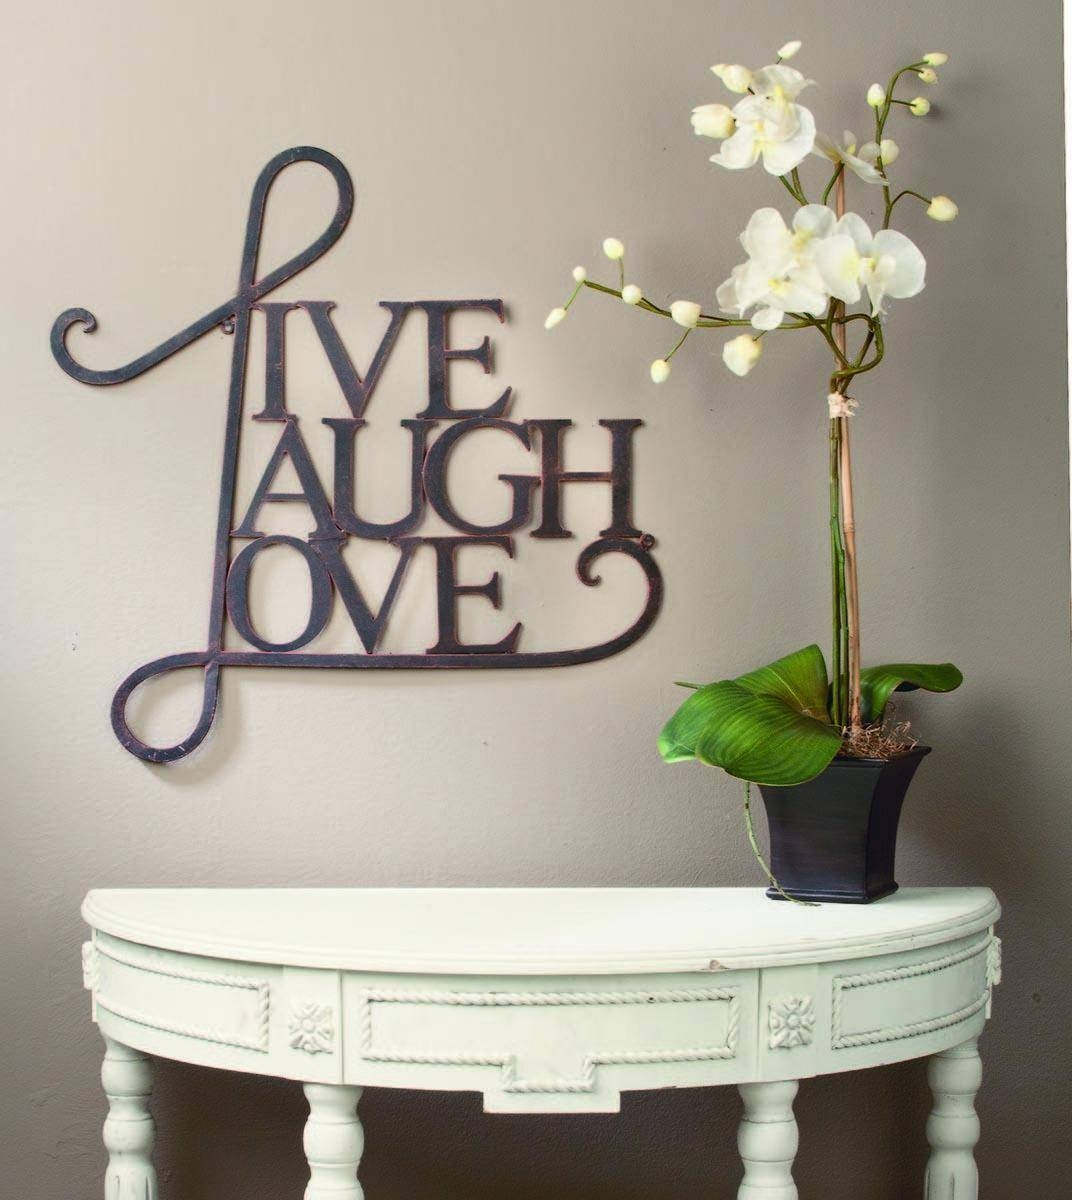 8 Best Images Of Love Wall Decor – Heart Shaped Frames, Live Laugh Intended For 2017 Live Love Laugh Metal Wall Art (View 12 of 25)